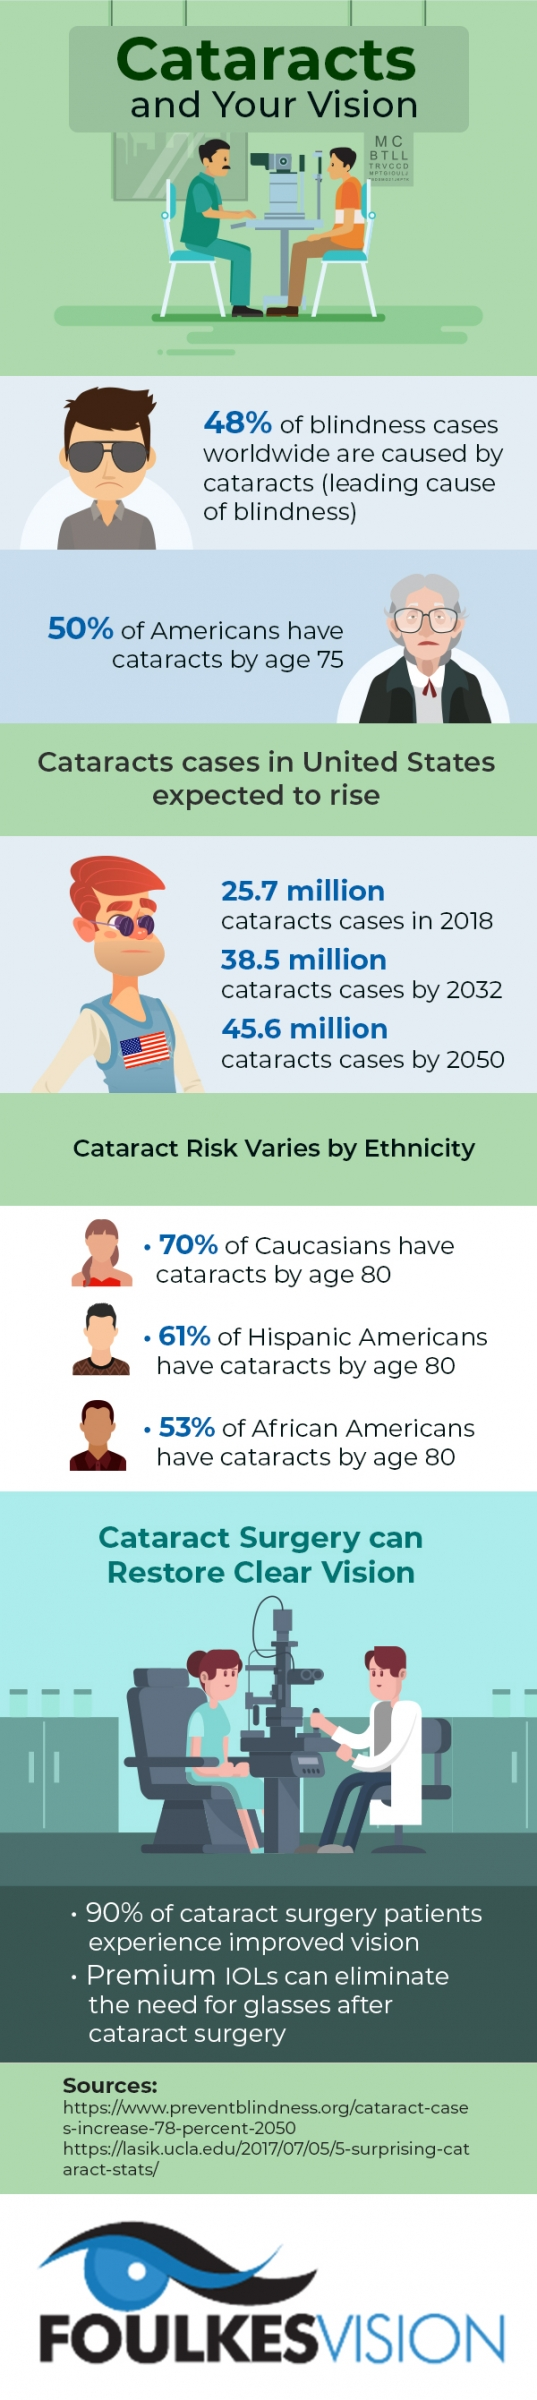 cataracts infographic - Chicago ophthalmologist